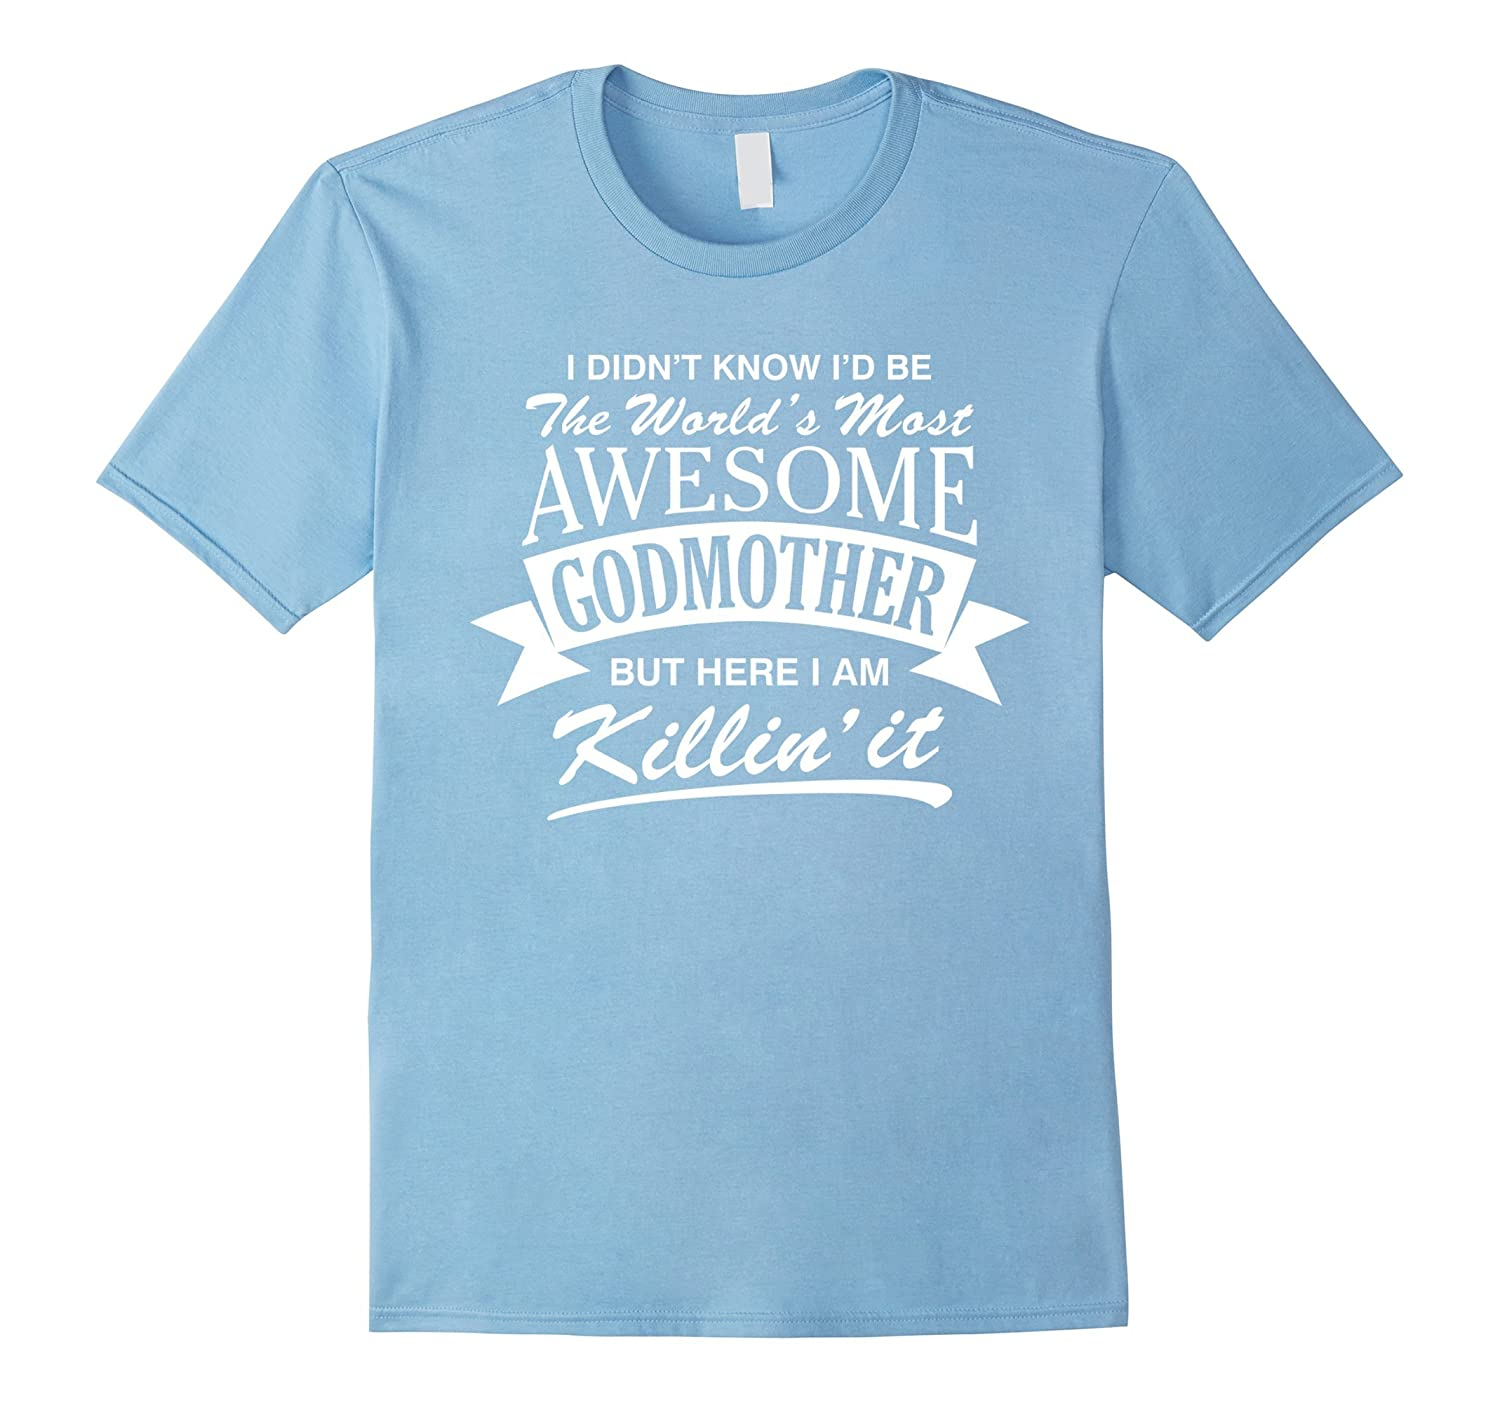 98476358f World's Most Awesome Godmother T-Shirt-ah my shirt one gift – Ahmyshirt